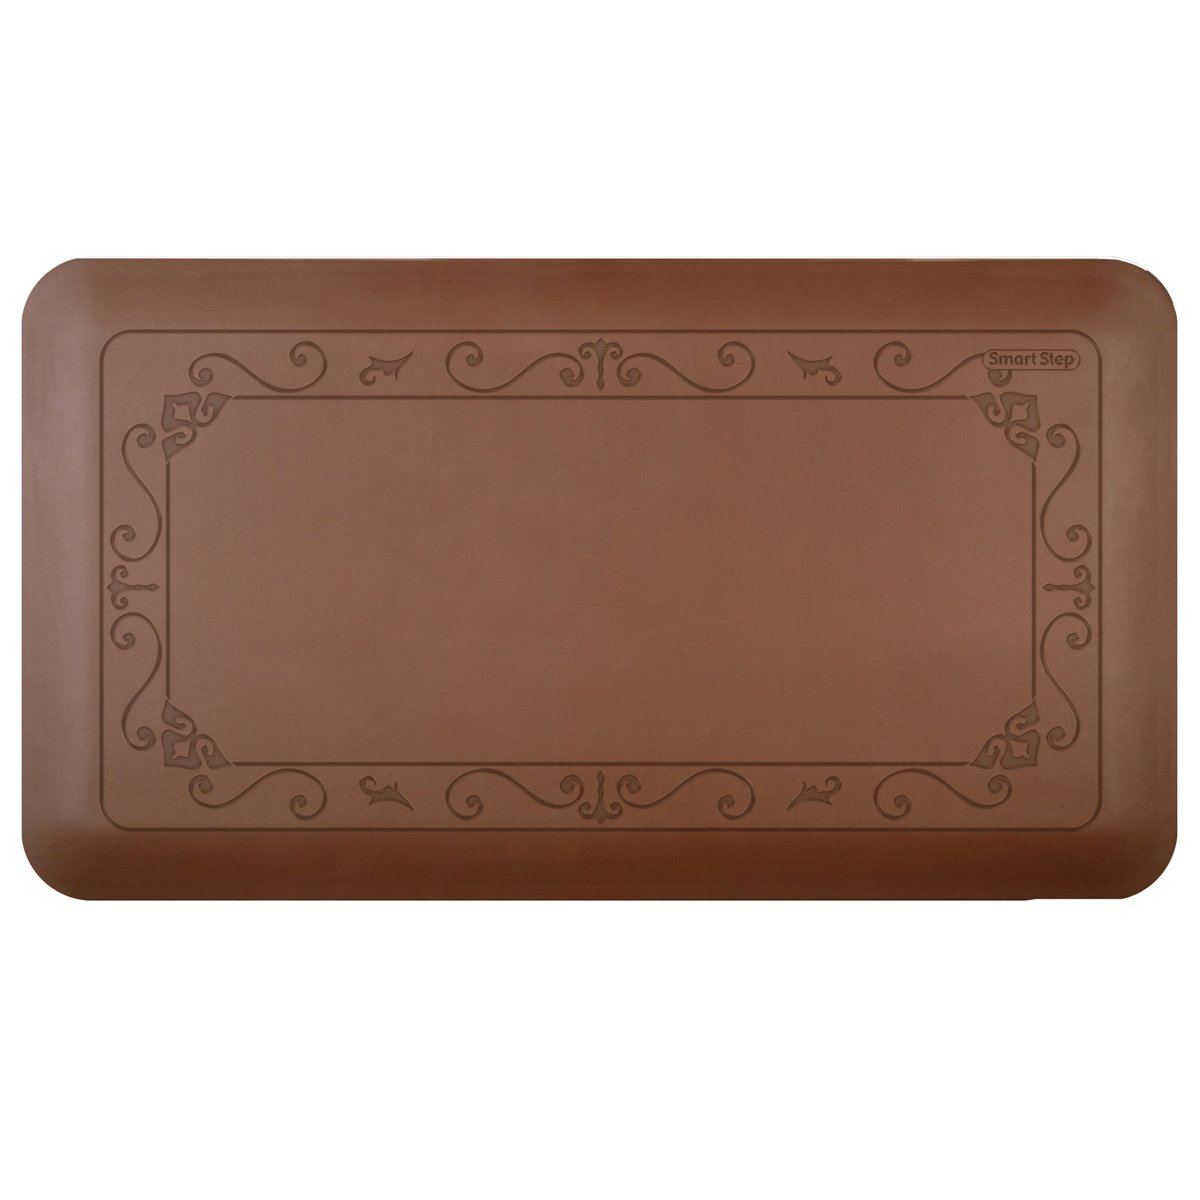 Smart Step Home 36 Inch by 20 Inch Fleur-de-Lys Mat, Brown